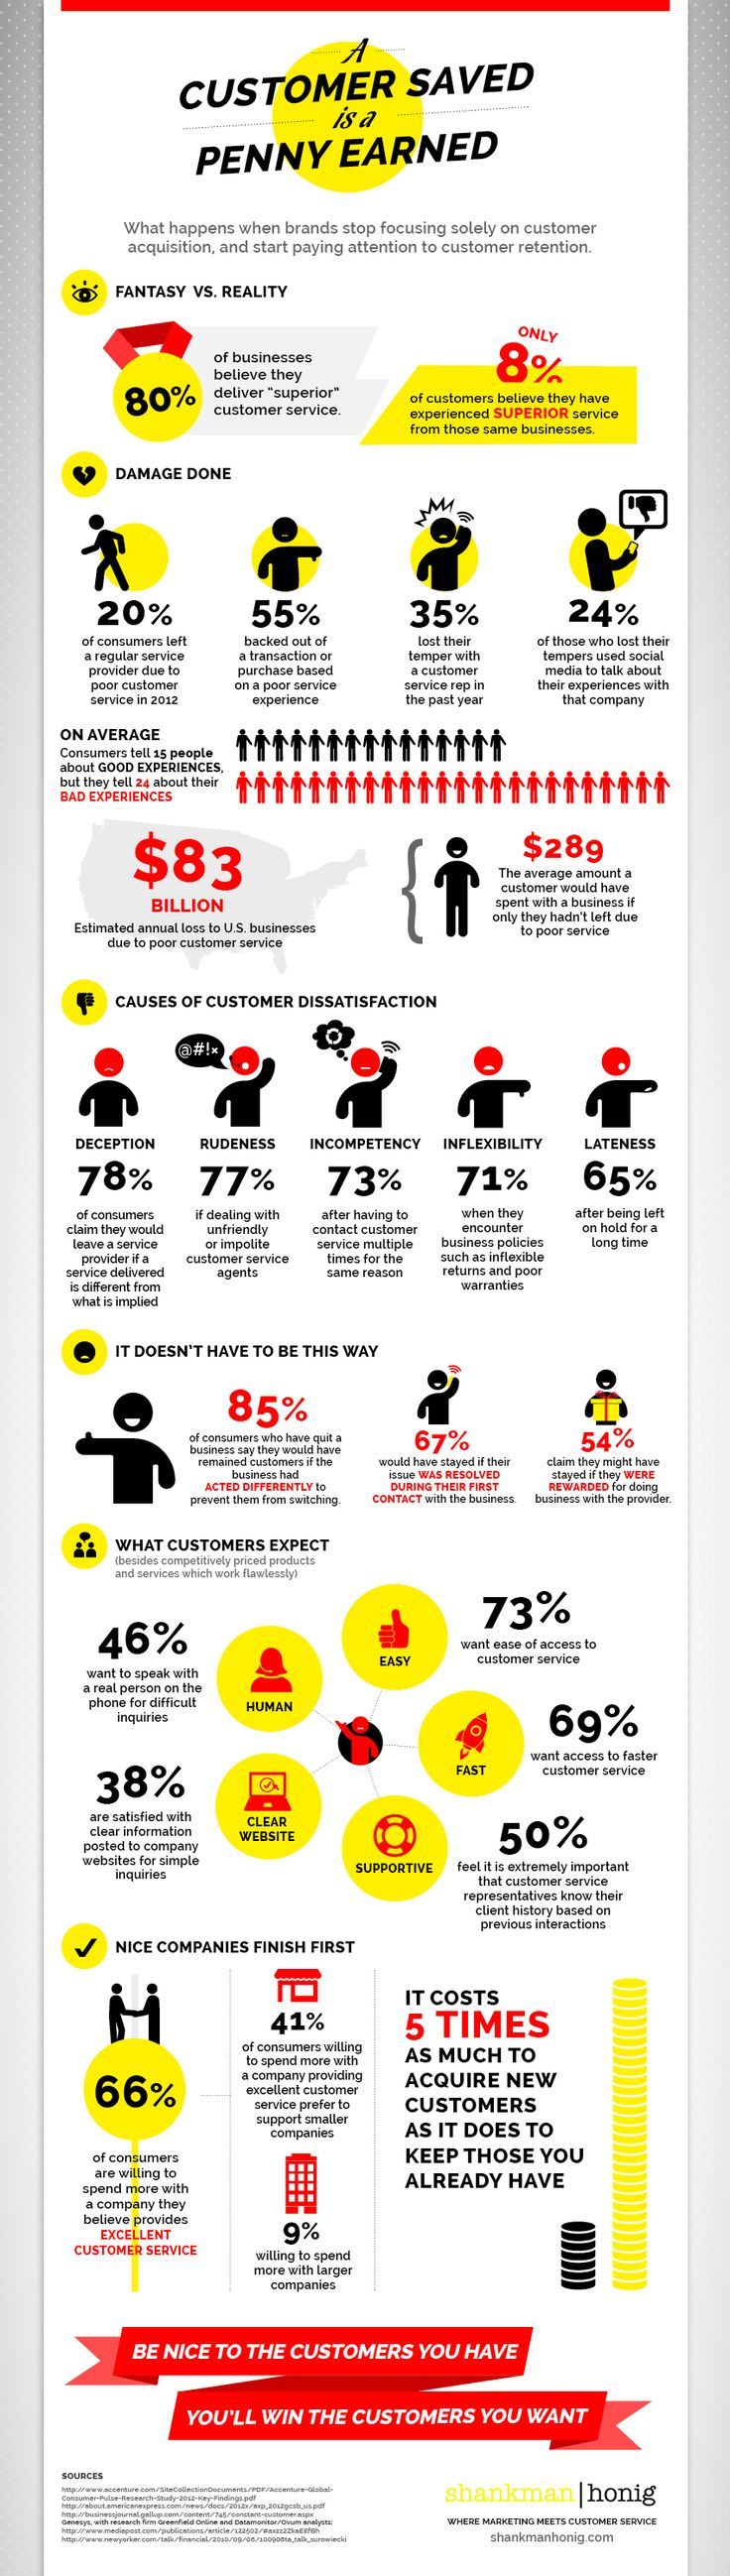 A Customer Served is a Penny Earned (Infographic)